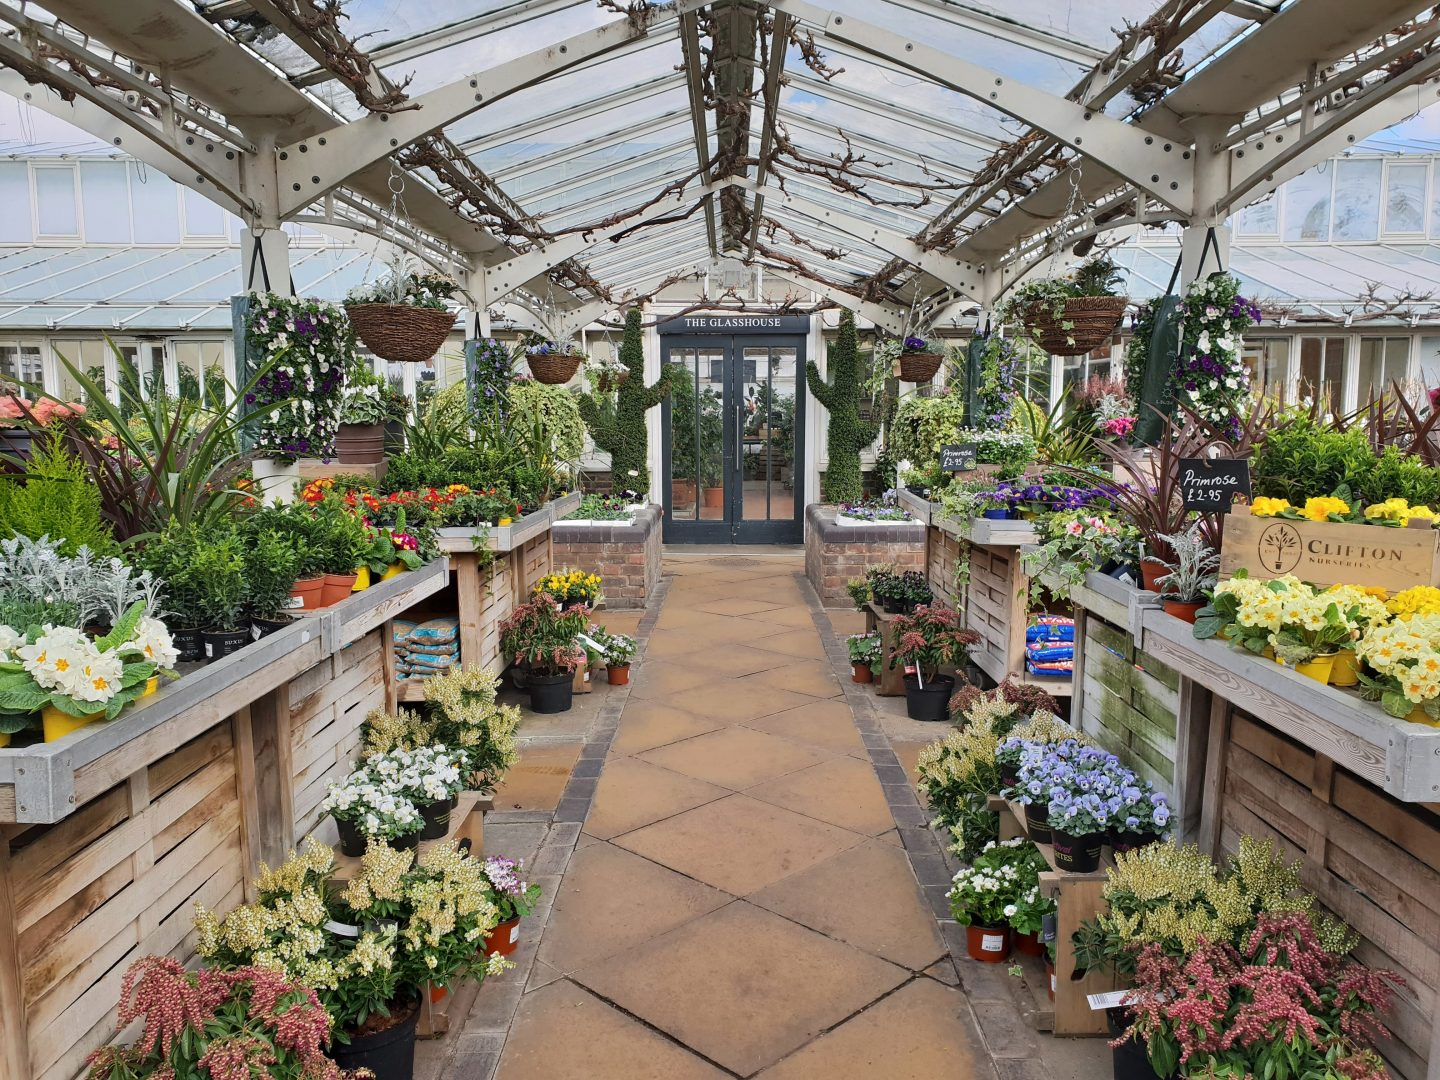 Clifton Nurseries in Maida Vale, London